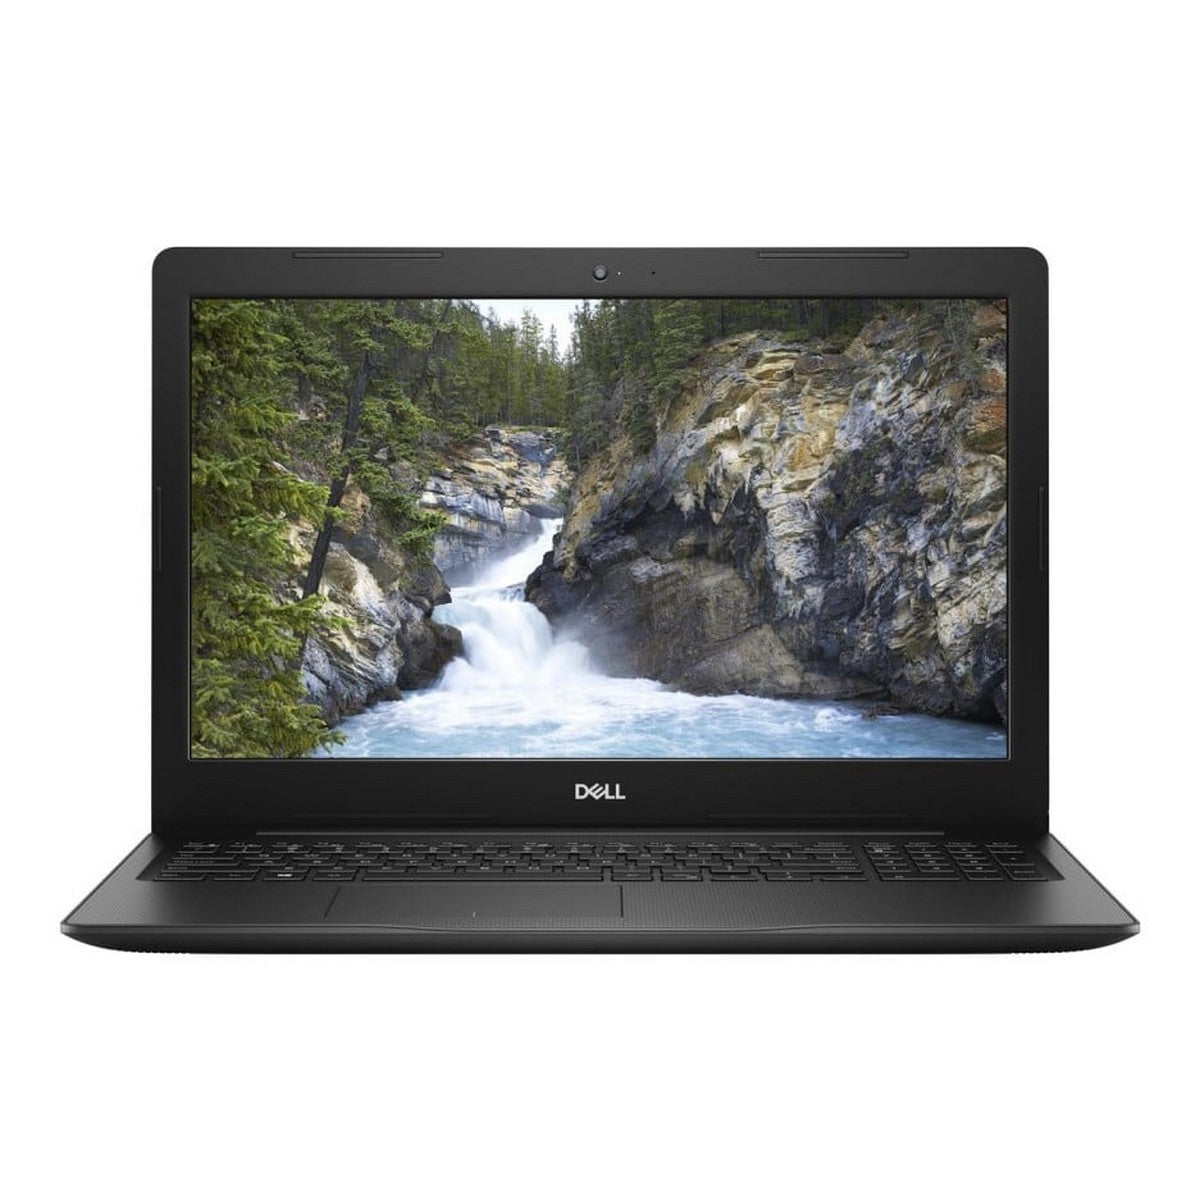 Dell Vostro Notebook 3501 Laptop 15.6